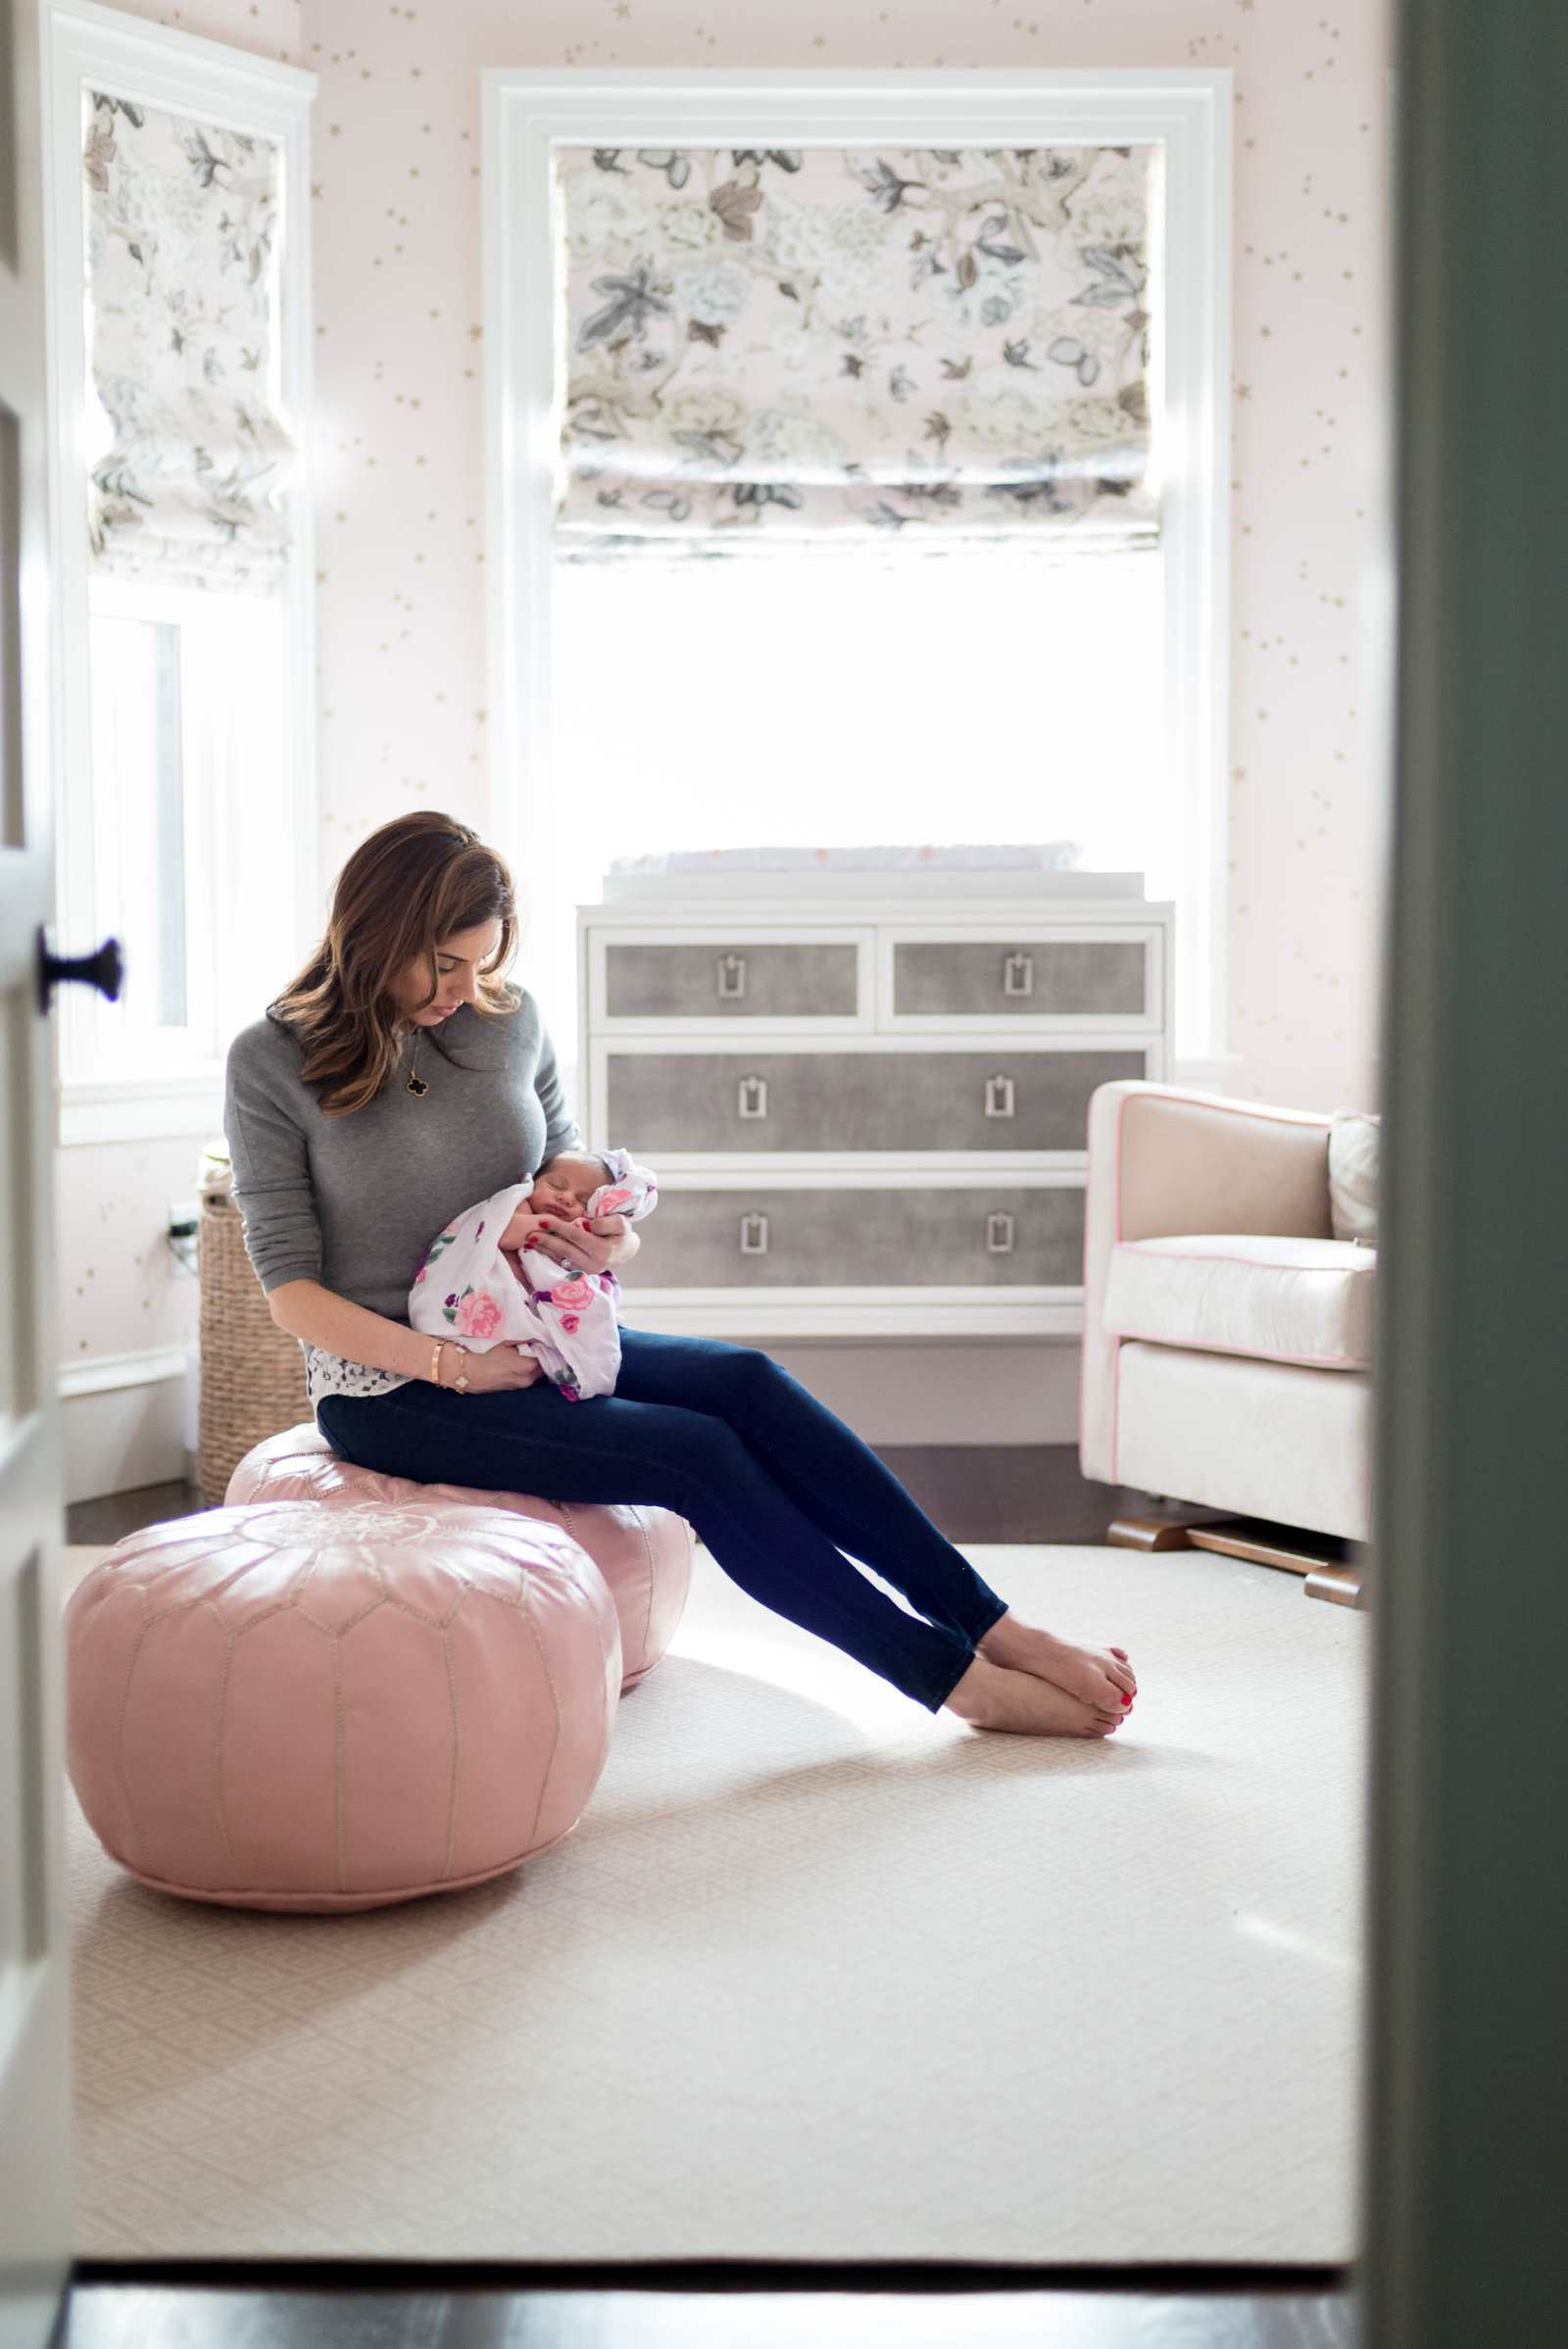 Boston-Newborn-Photographer-Lifestyle-Documentary-Home-Styled-Session-311